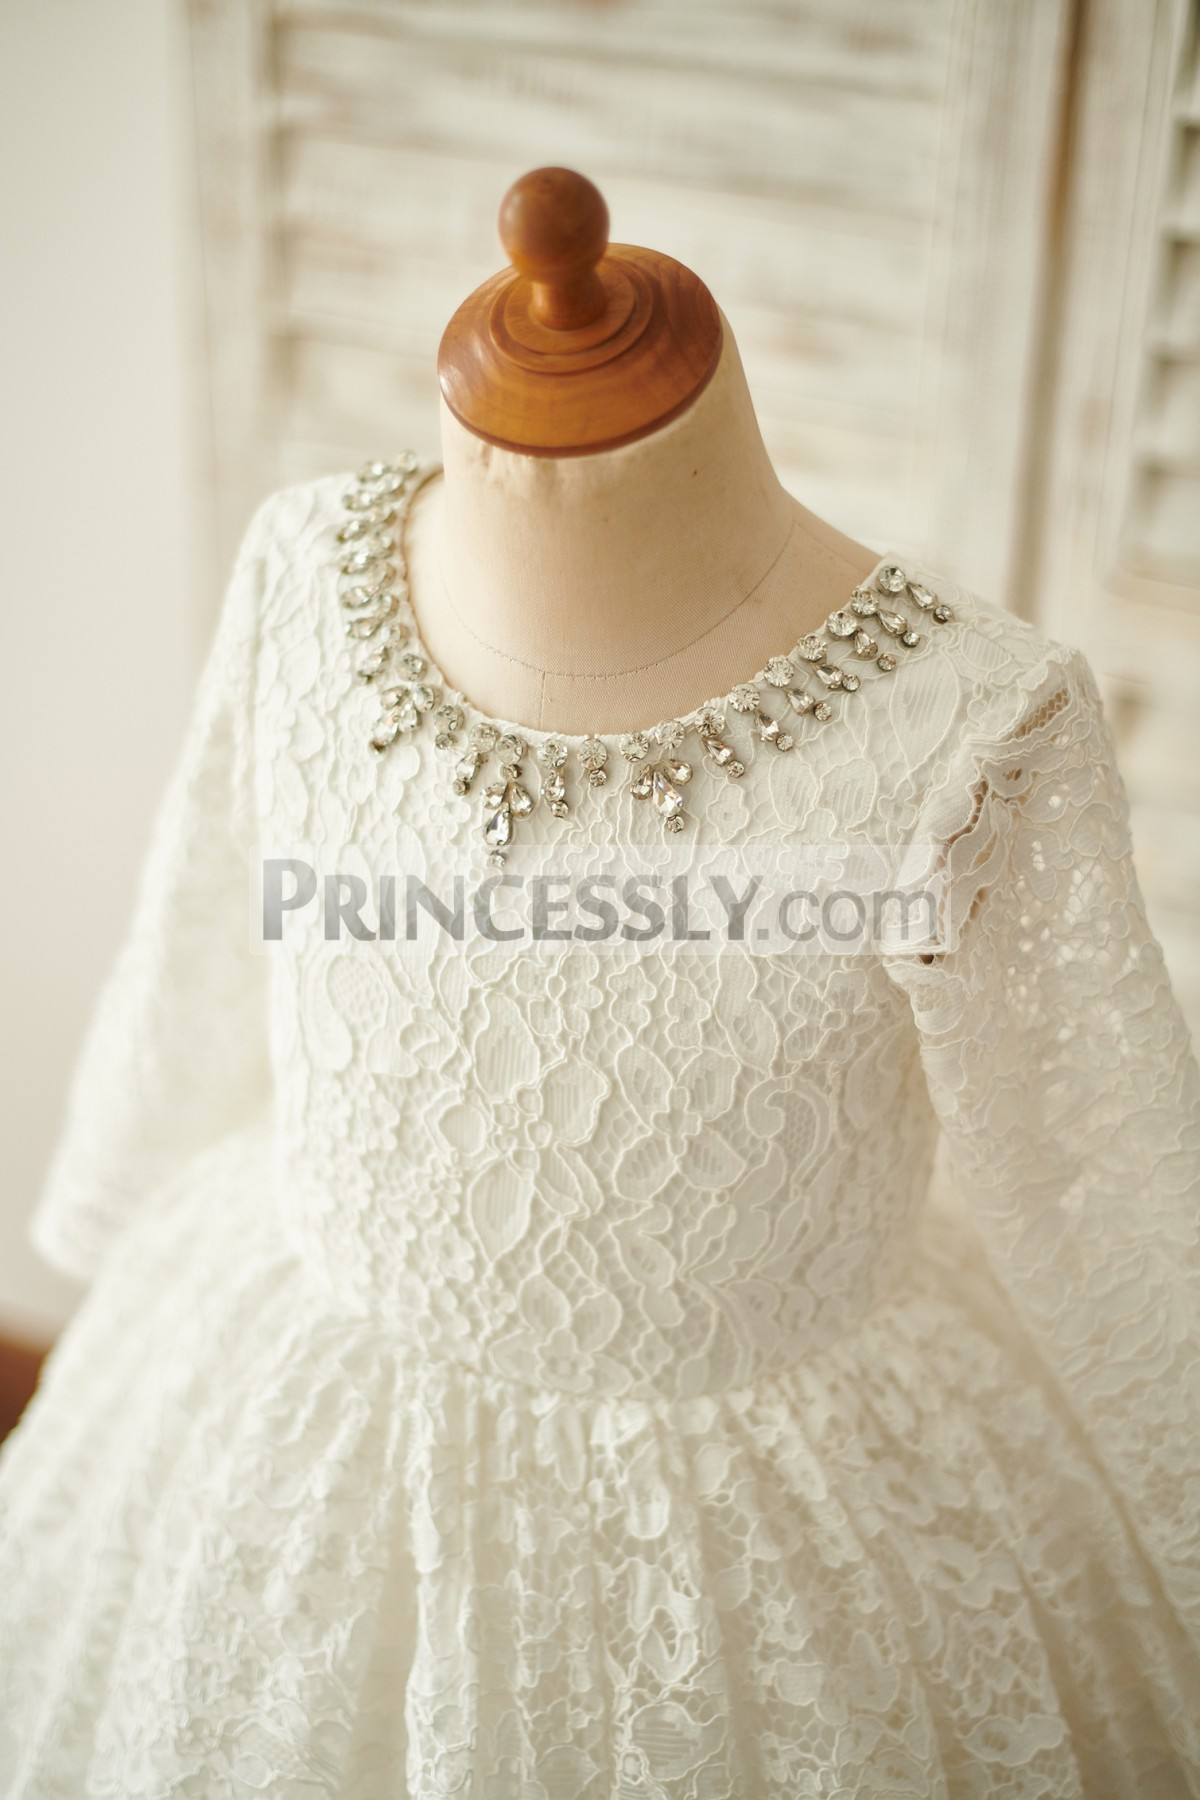 b40e47ccbc5 Babe Long Sleeves Crystal Scoop Neck Lining Wedding Toddler Girl Dress